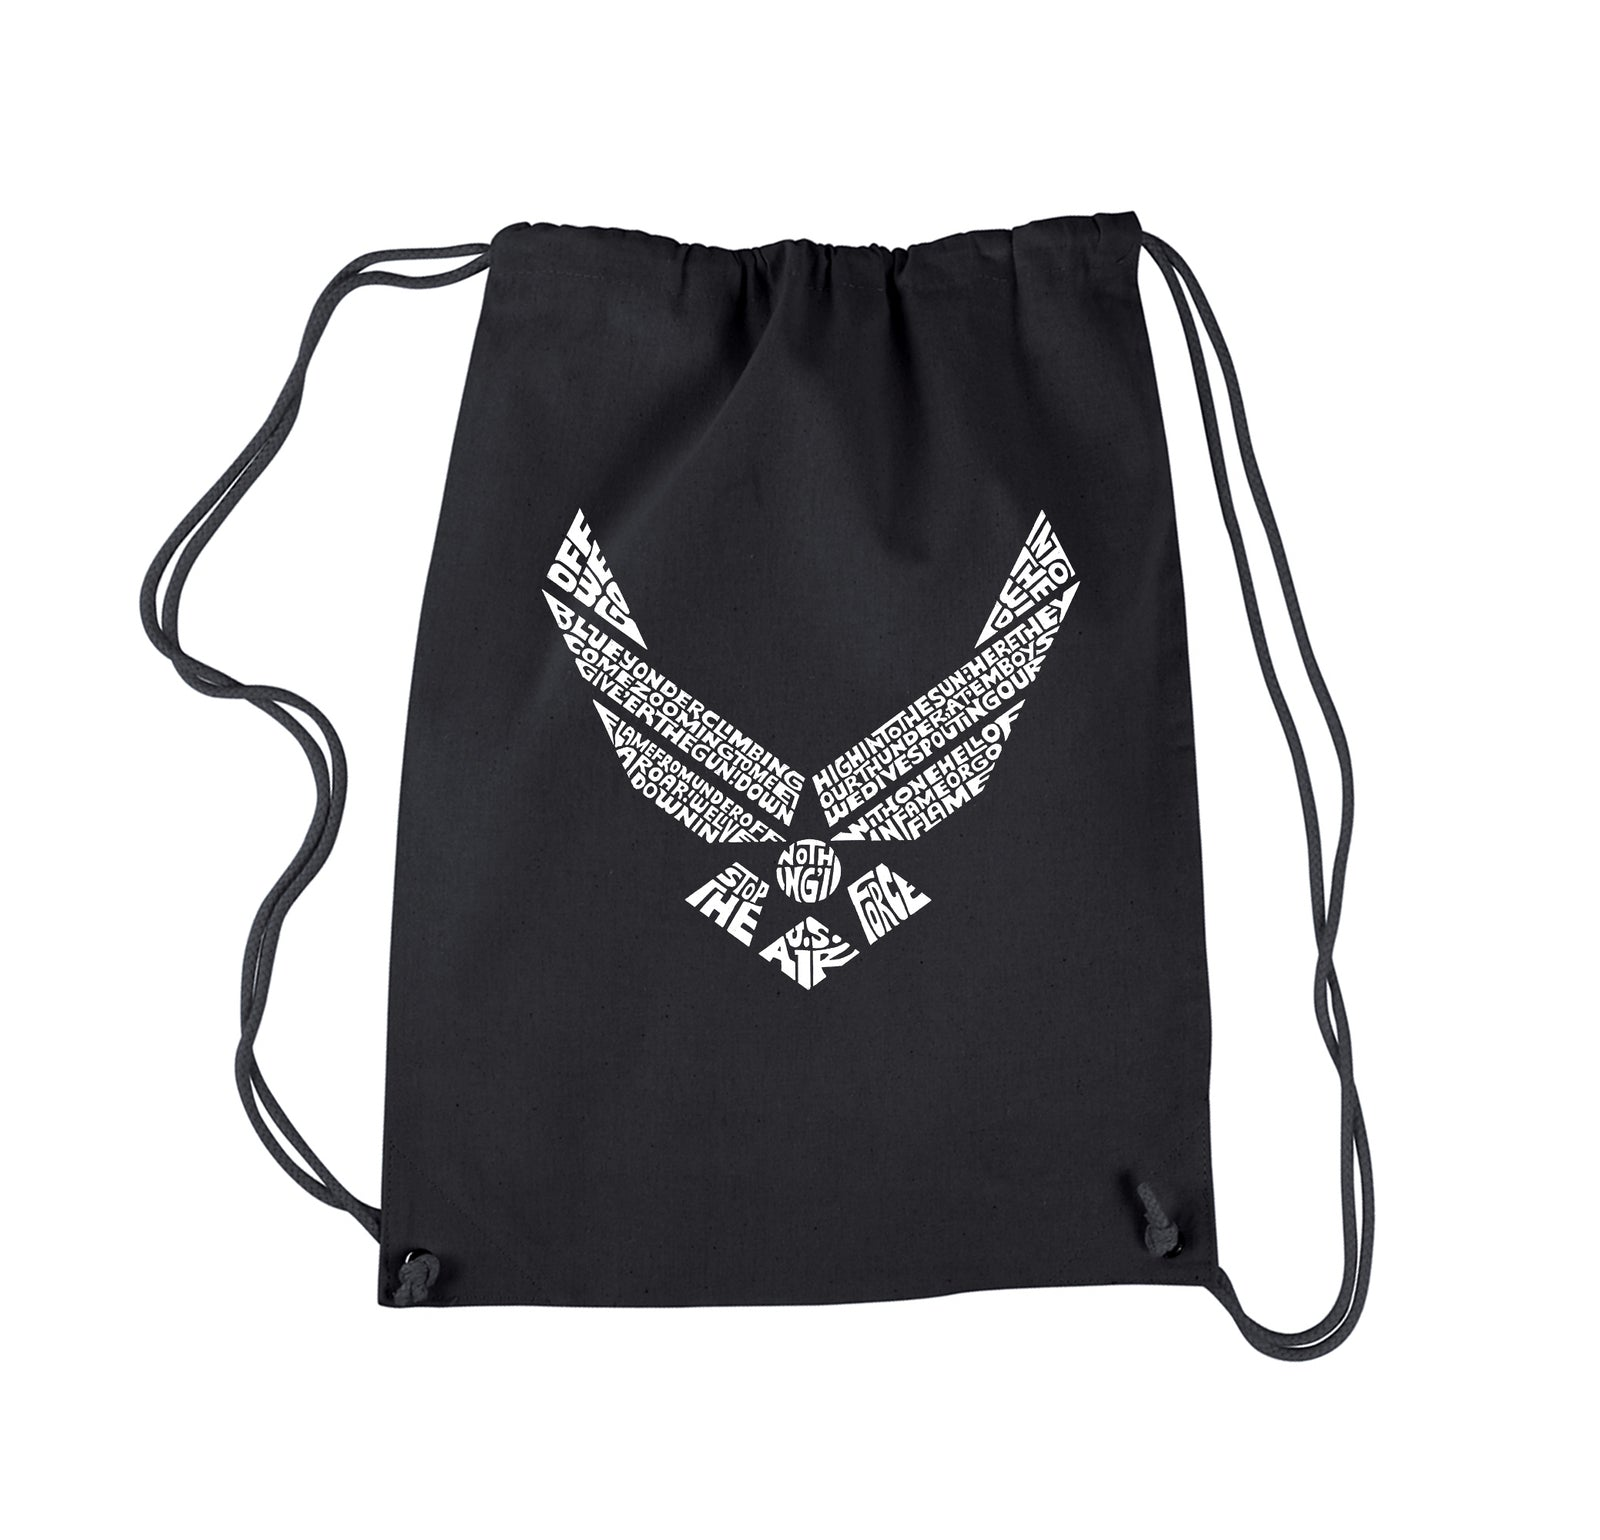 Drawstring Backpack - LYRICS TO THE AIR FORCE SONG